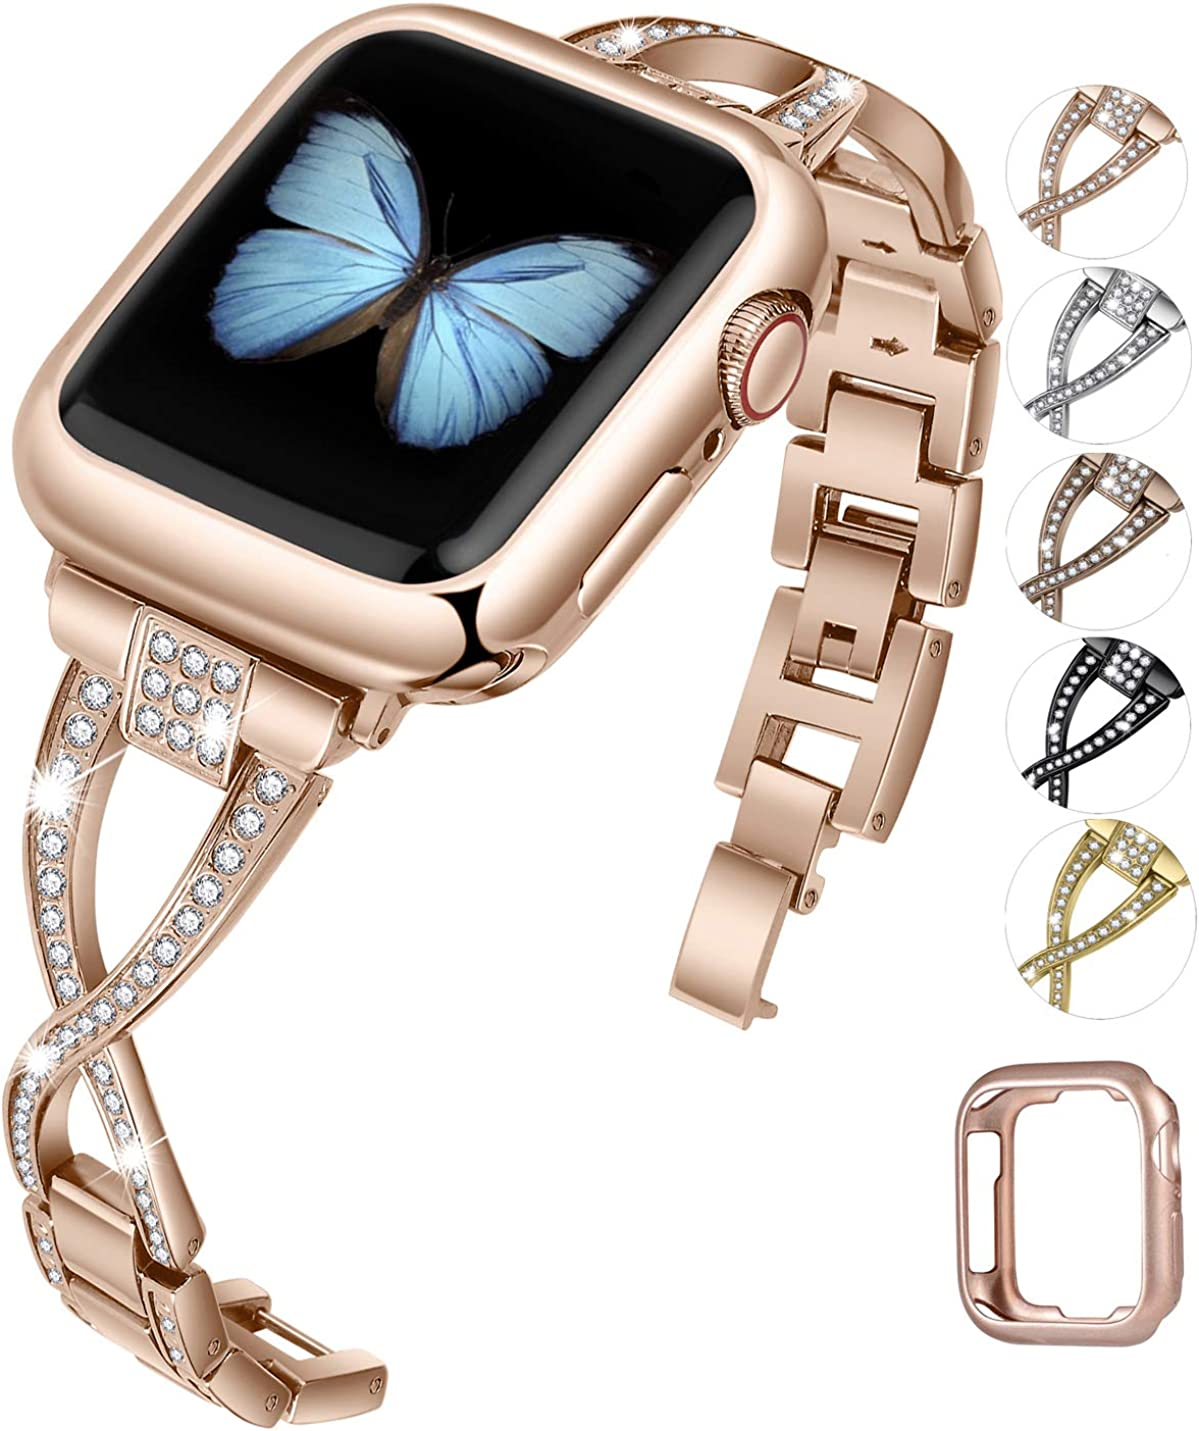 JFdragon Watch Bands Compatible with Apple Watch 38mm 40mm 42mm 44mm SE Series 6 5 4 3 2 1 Women Jewelry Metal Strap with Bling Diamond Replacement Bracelet